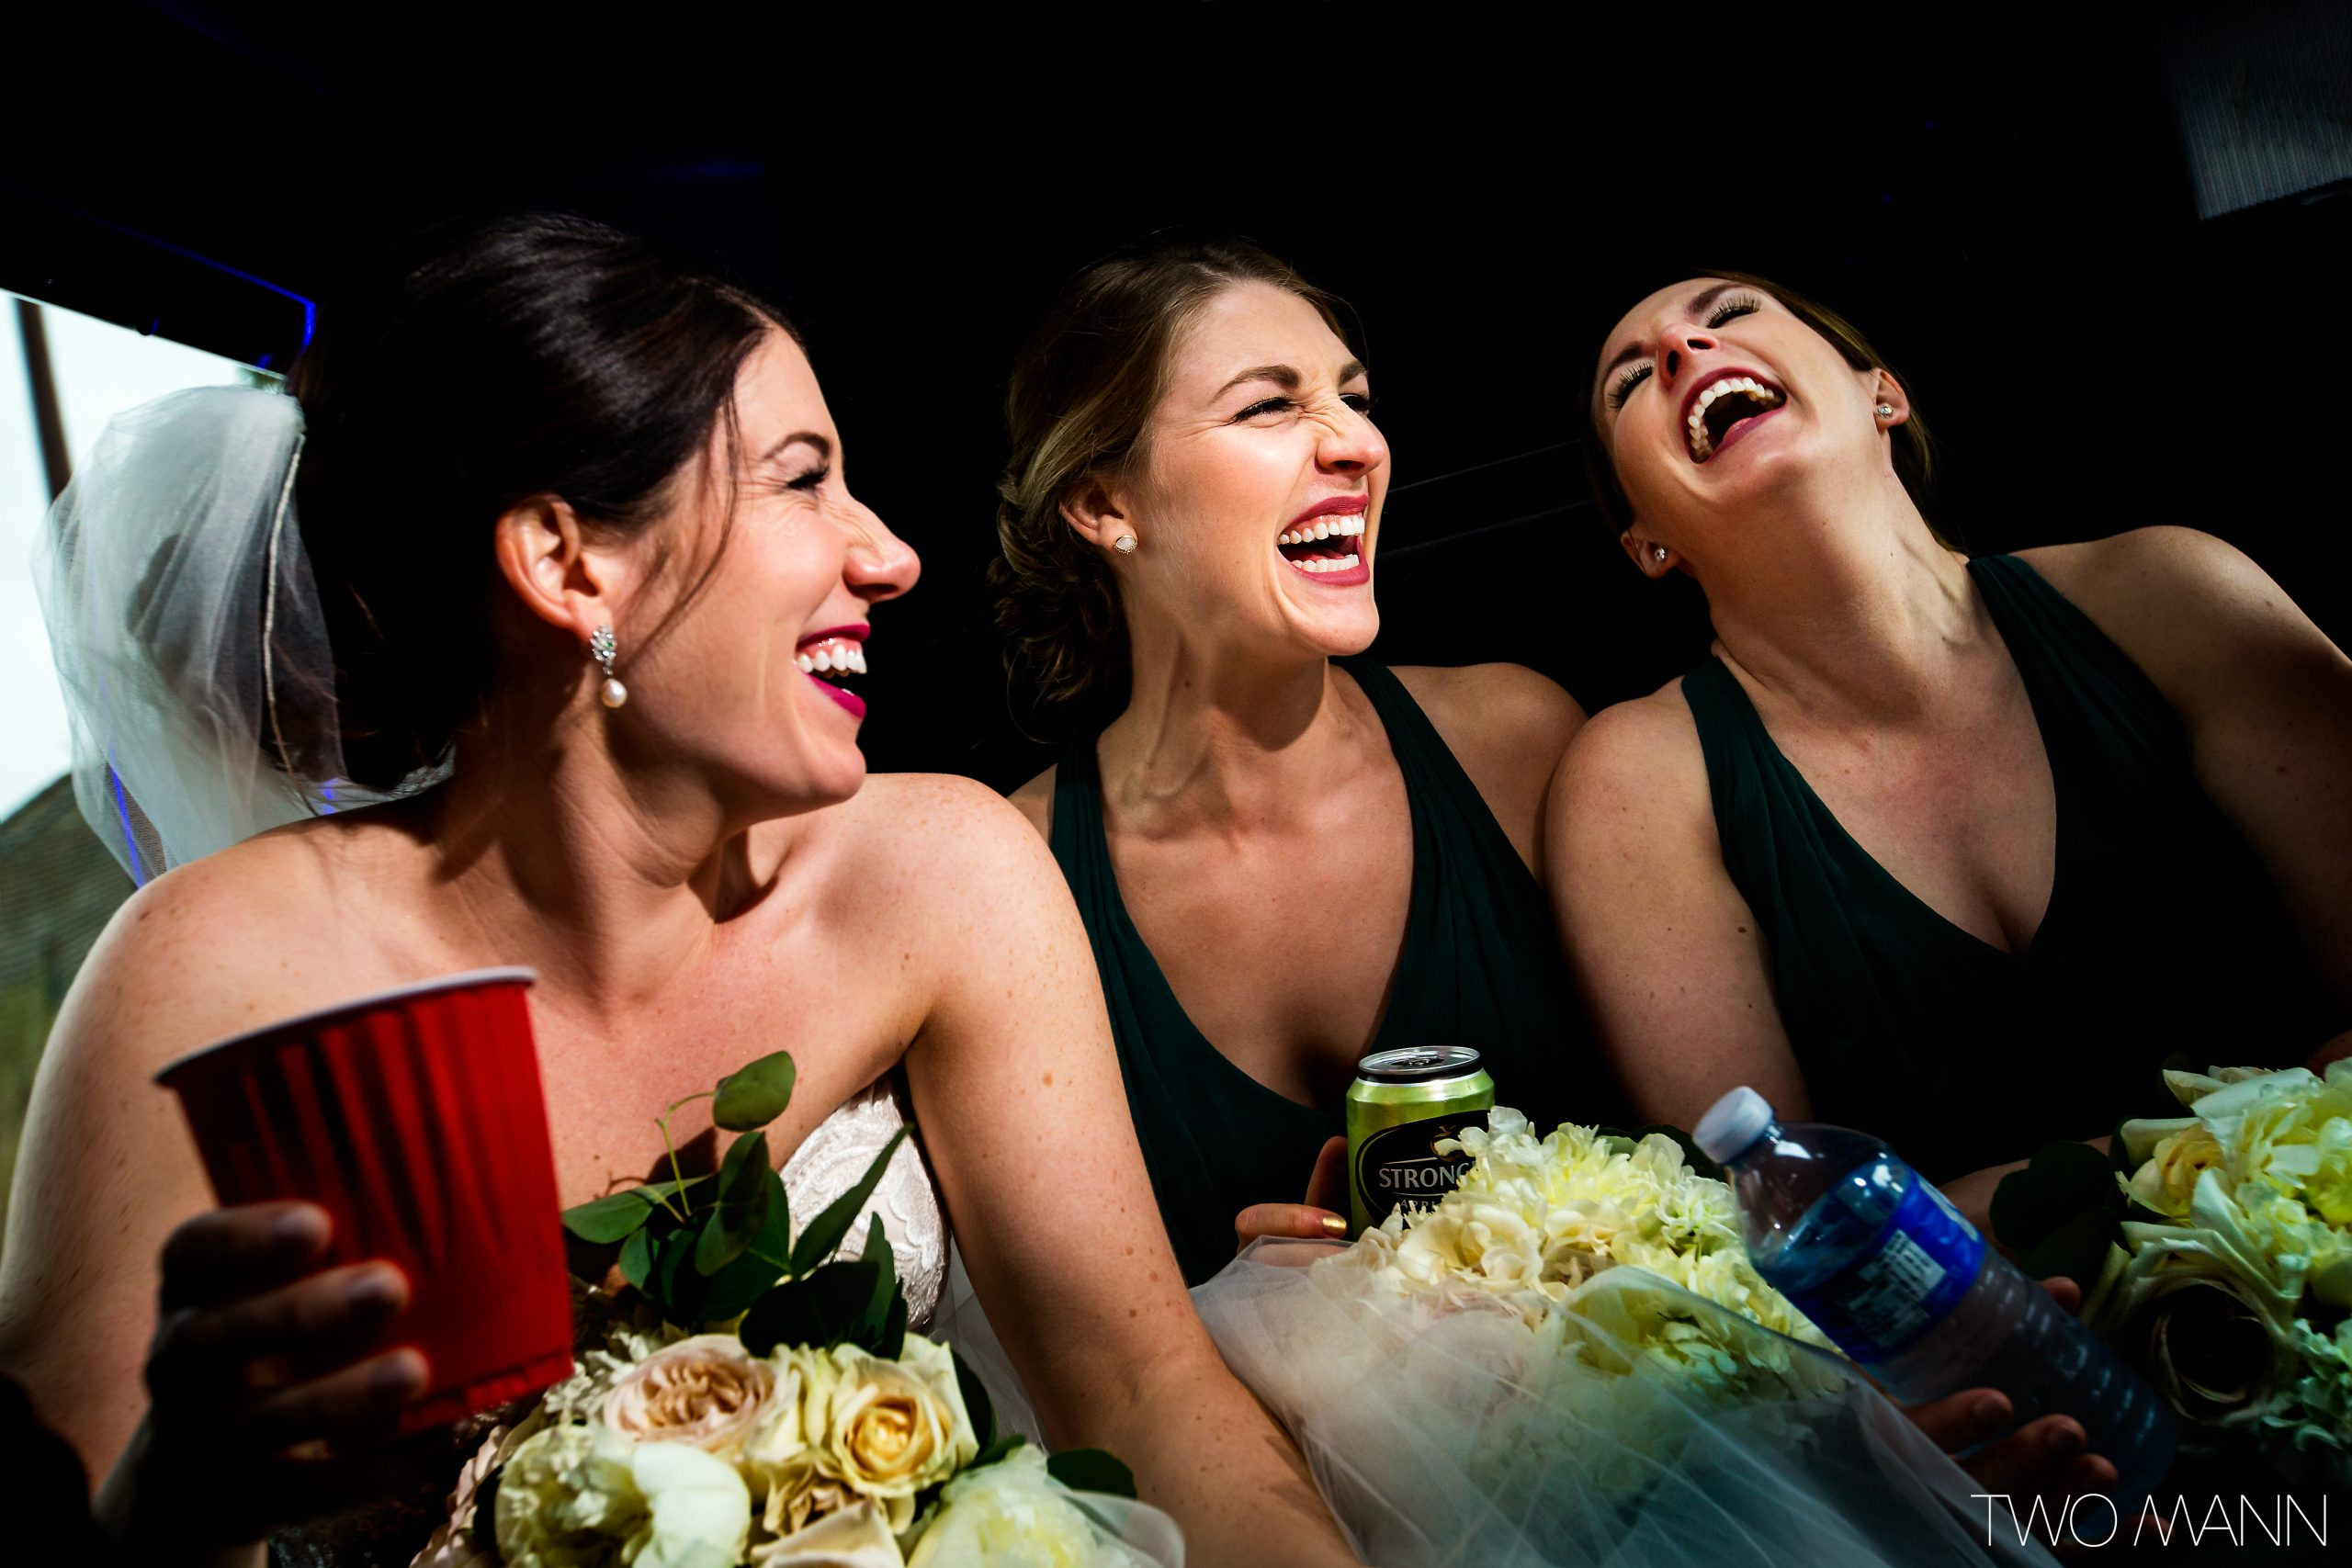 Bride and bridesmaids laughing in limo